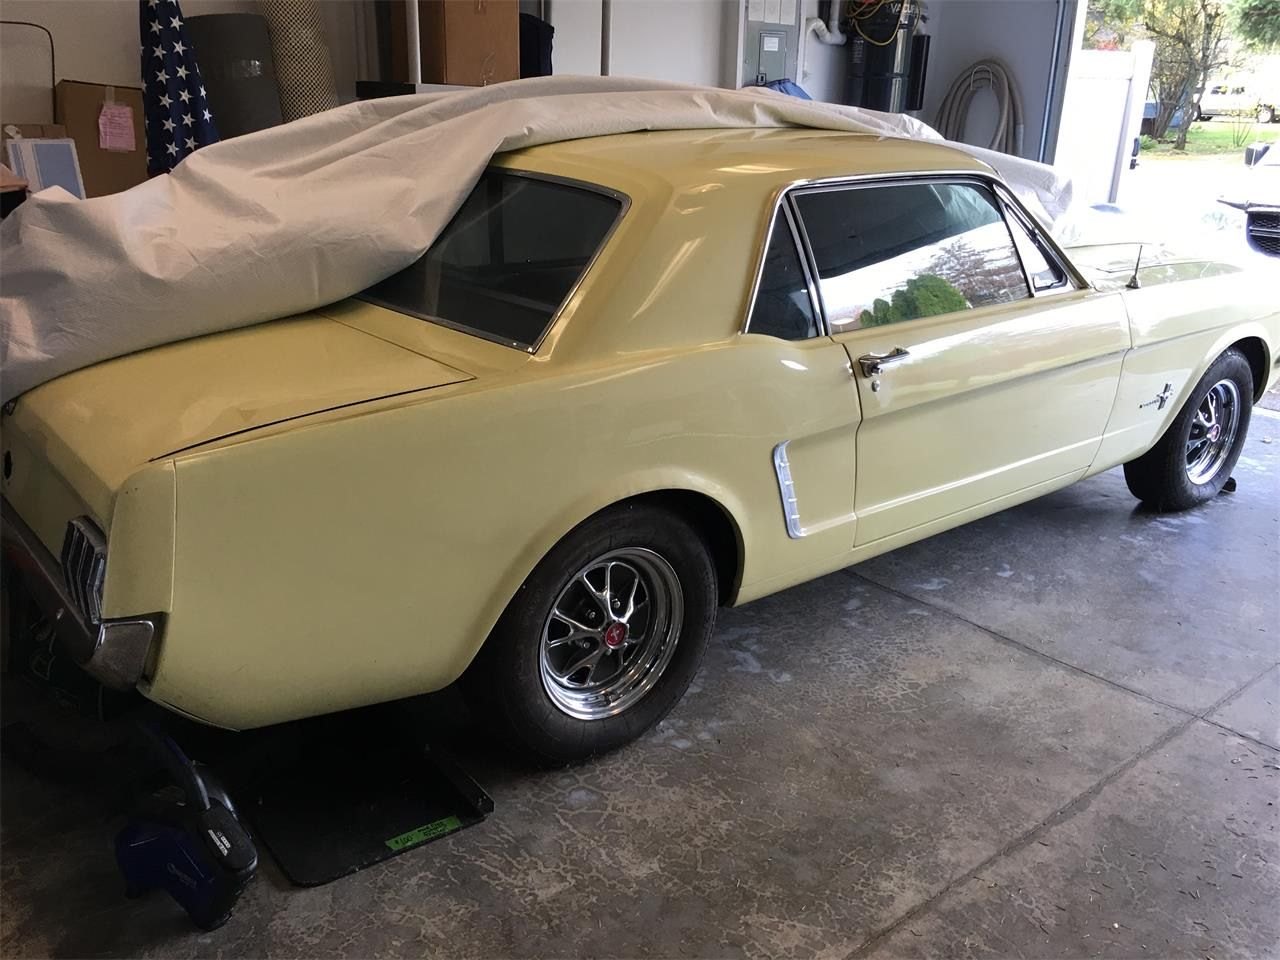 Pick of the day: This Mustang is electric, literally for Sale | ClassicCars.com | Listing ID: CC-1079944 | #DriveYourDream | #PickoftheDay